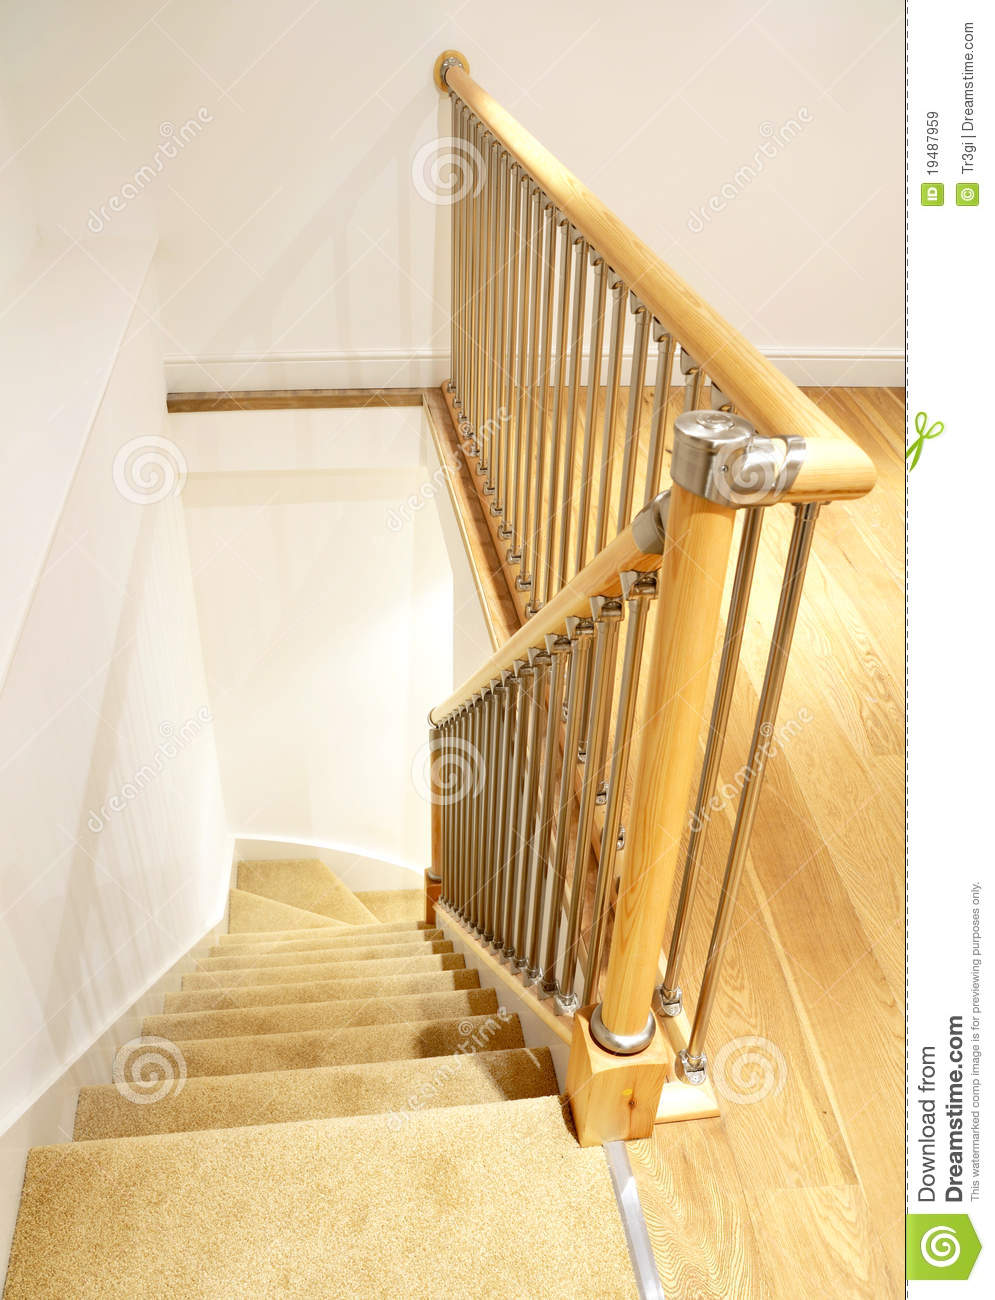 Modern House Interior Stairs With Chrome Railing Royalty Free Stock Images Image 19487959